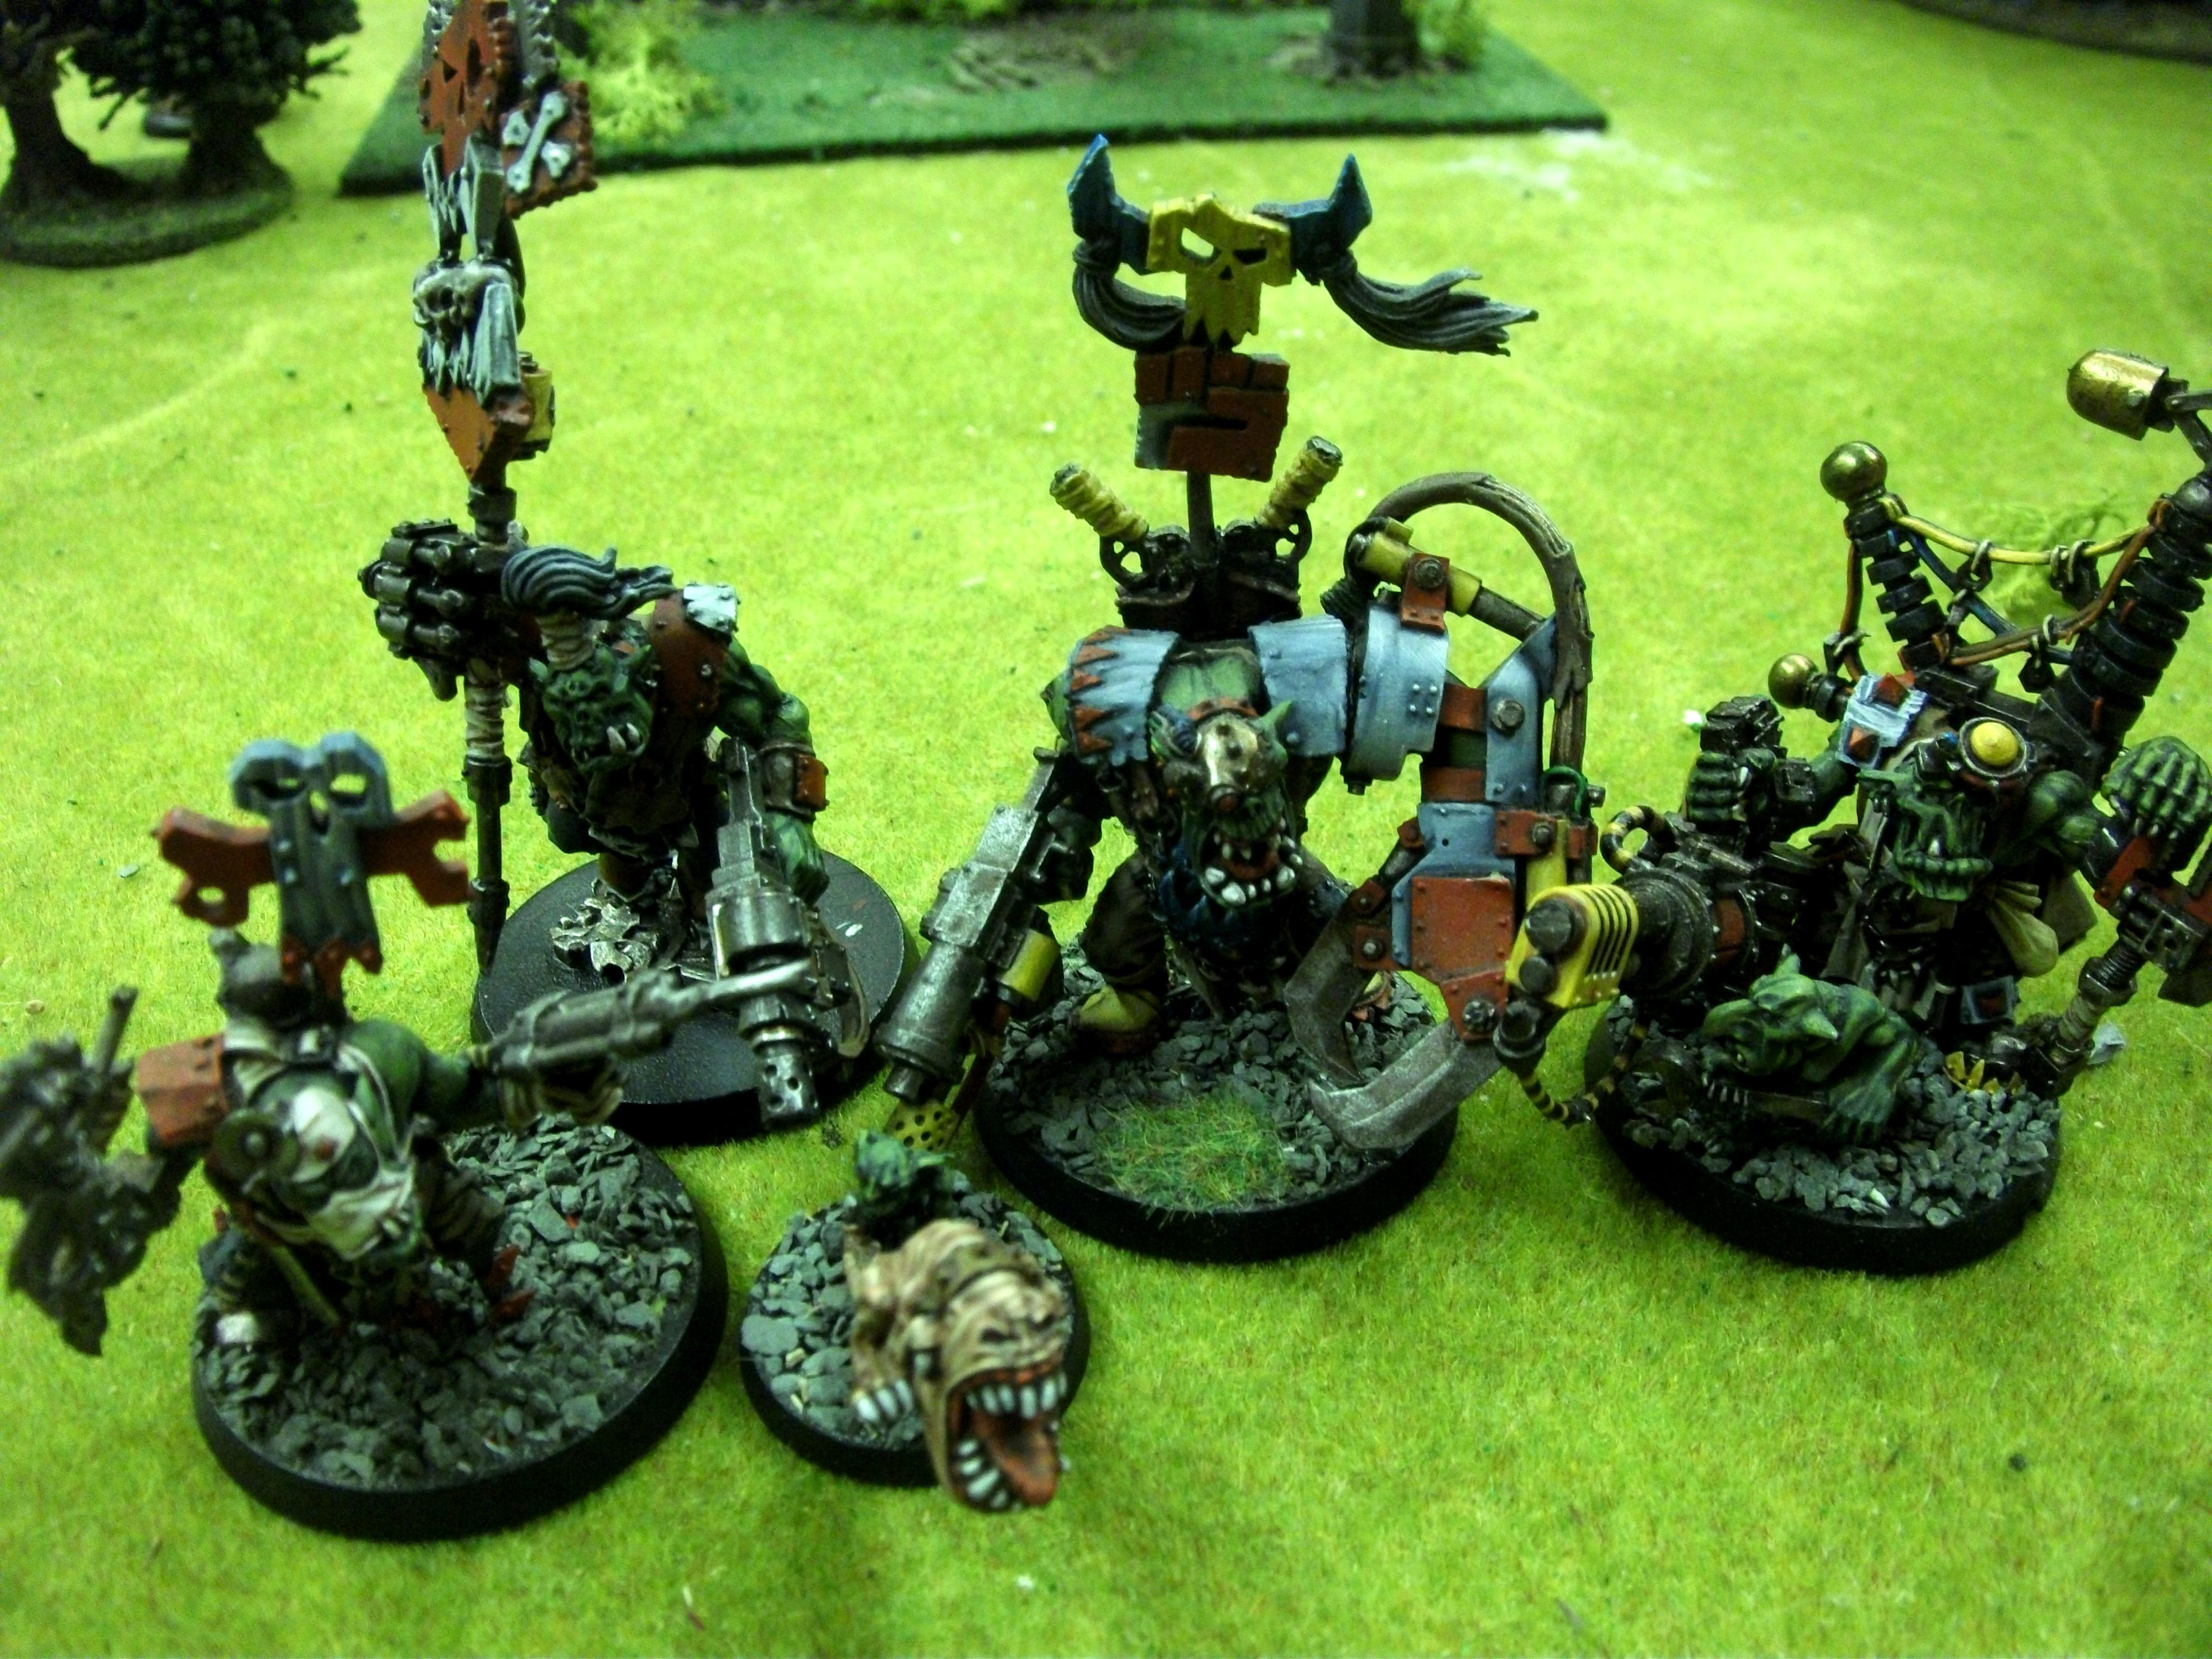 Command Squad, Headquarters, Ork Stompa, Orks, Warboss